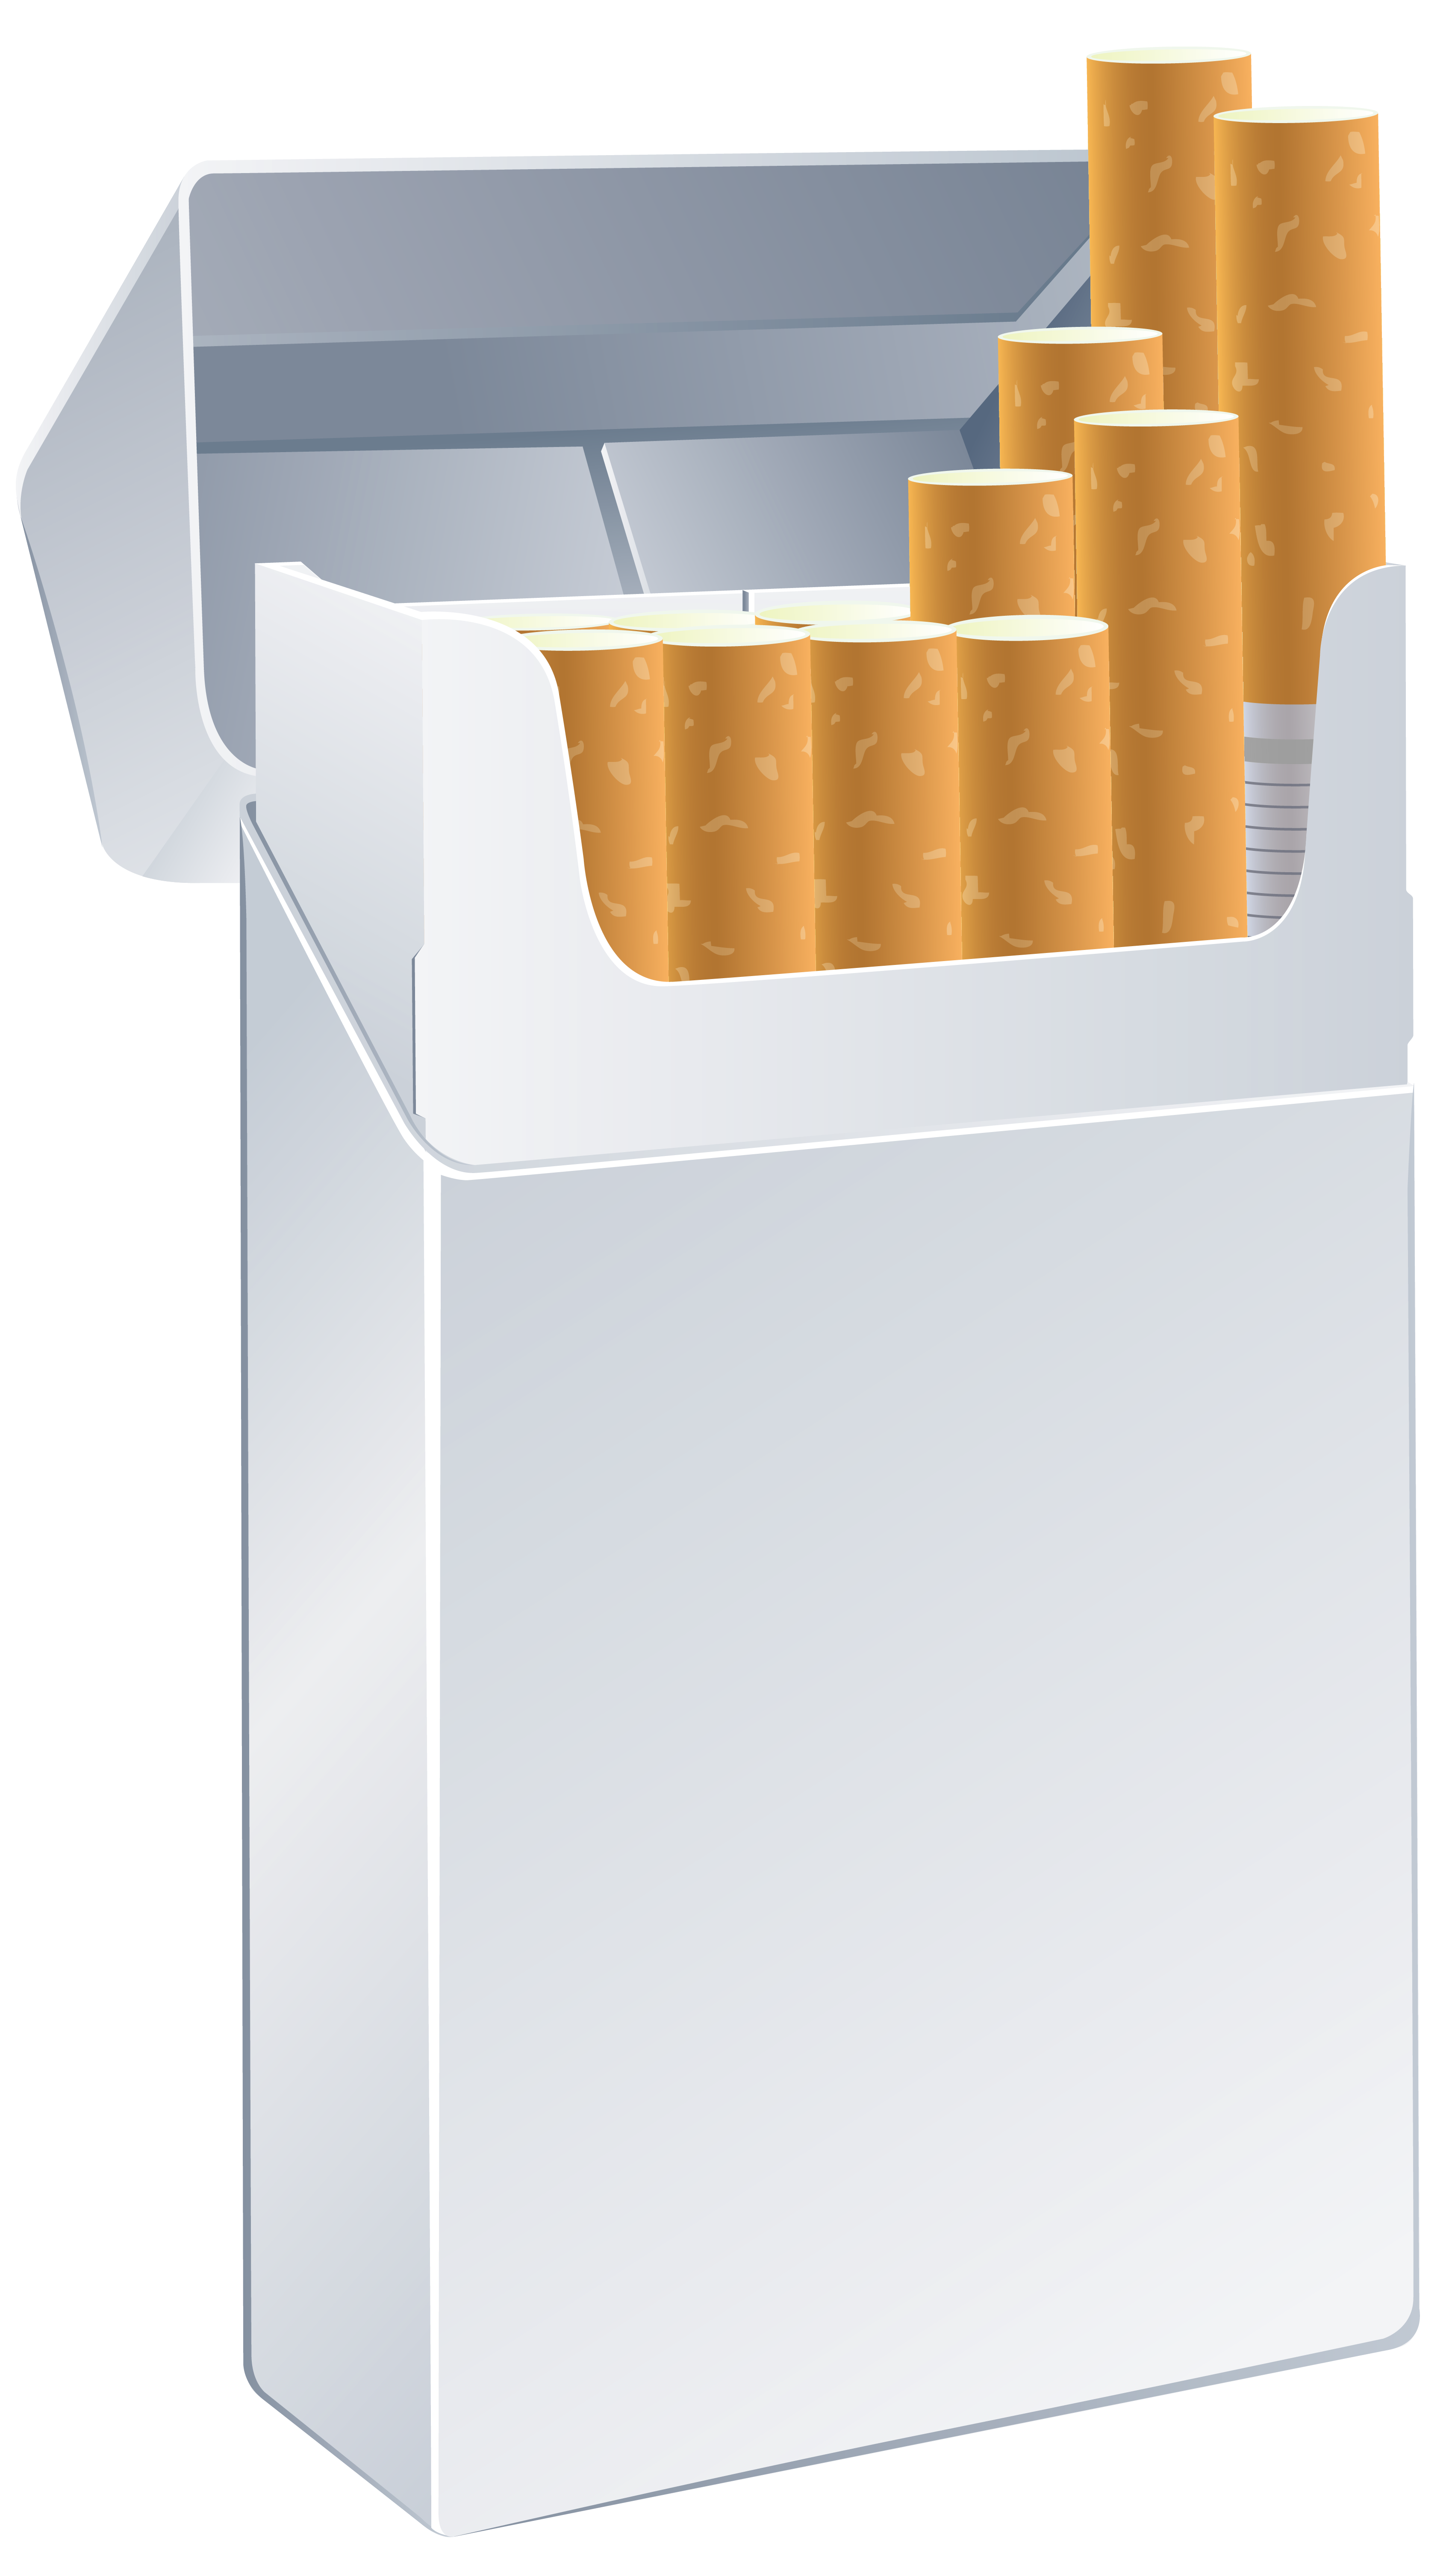 Cigarette Box Template PNG Clipart.